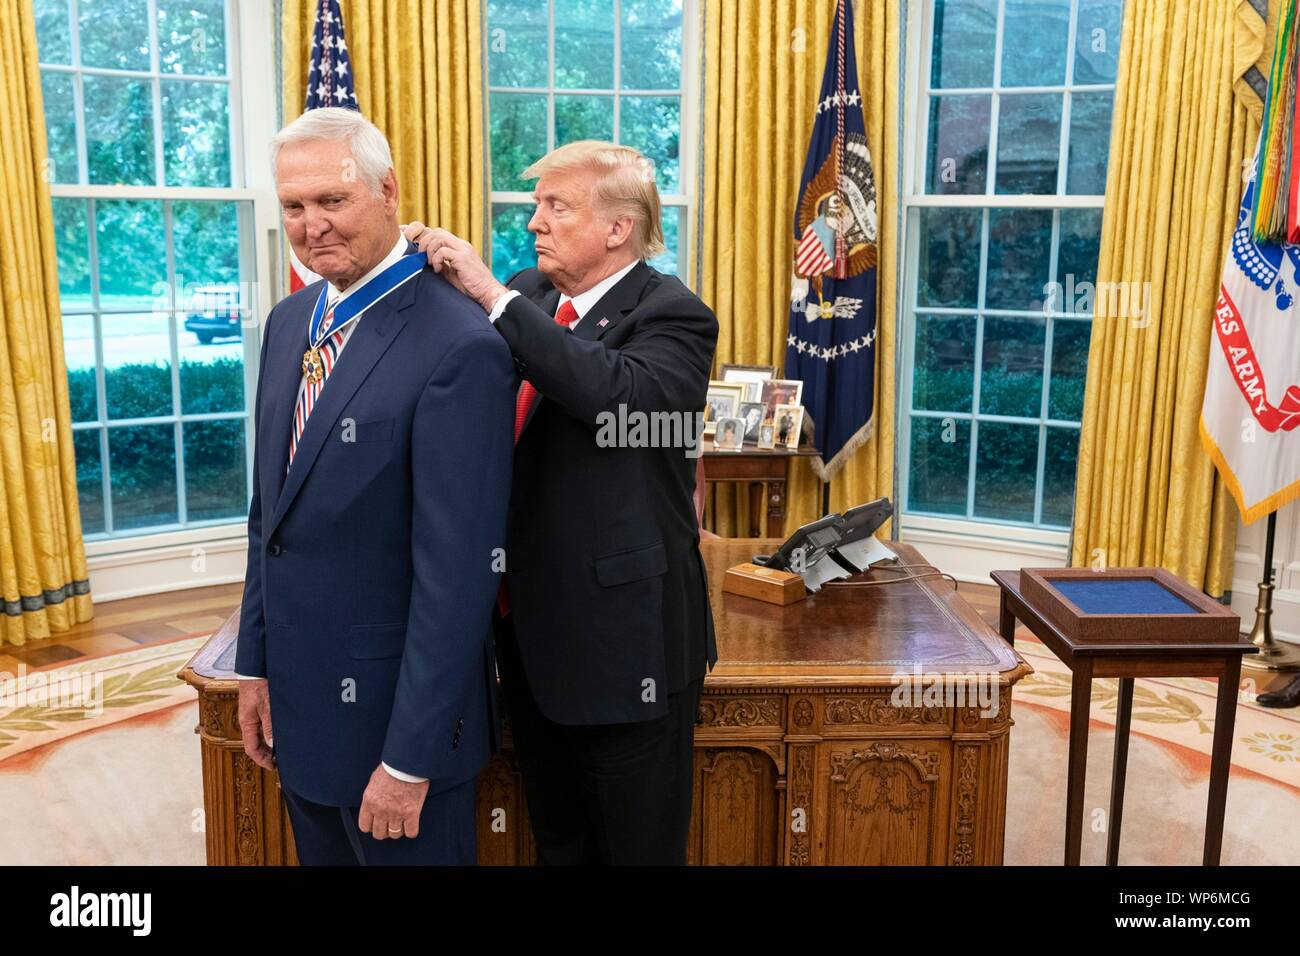 Washington, DC, USA. 05 September, 2019. U.S President Donald Trump, right, presents the Presidential Medal of Freedom, to Hall of Fame Los Angeles Lakers basketball star and legendary NBA General Manager Jerry West during a ceremony in the Oval Office of the White House September 5, 2019 in Washington, DC. Stock Photo